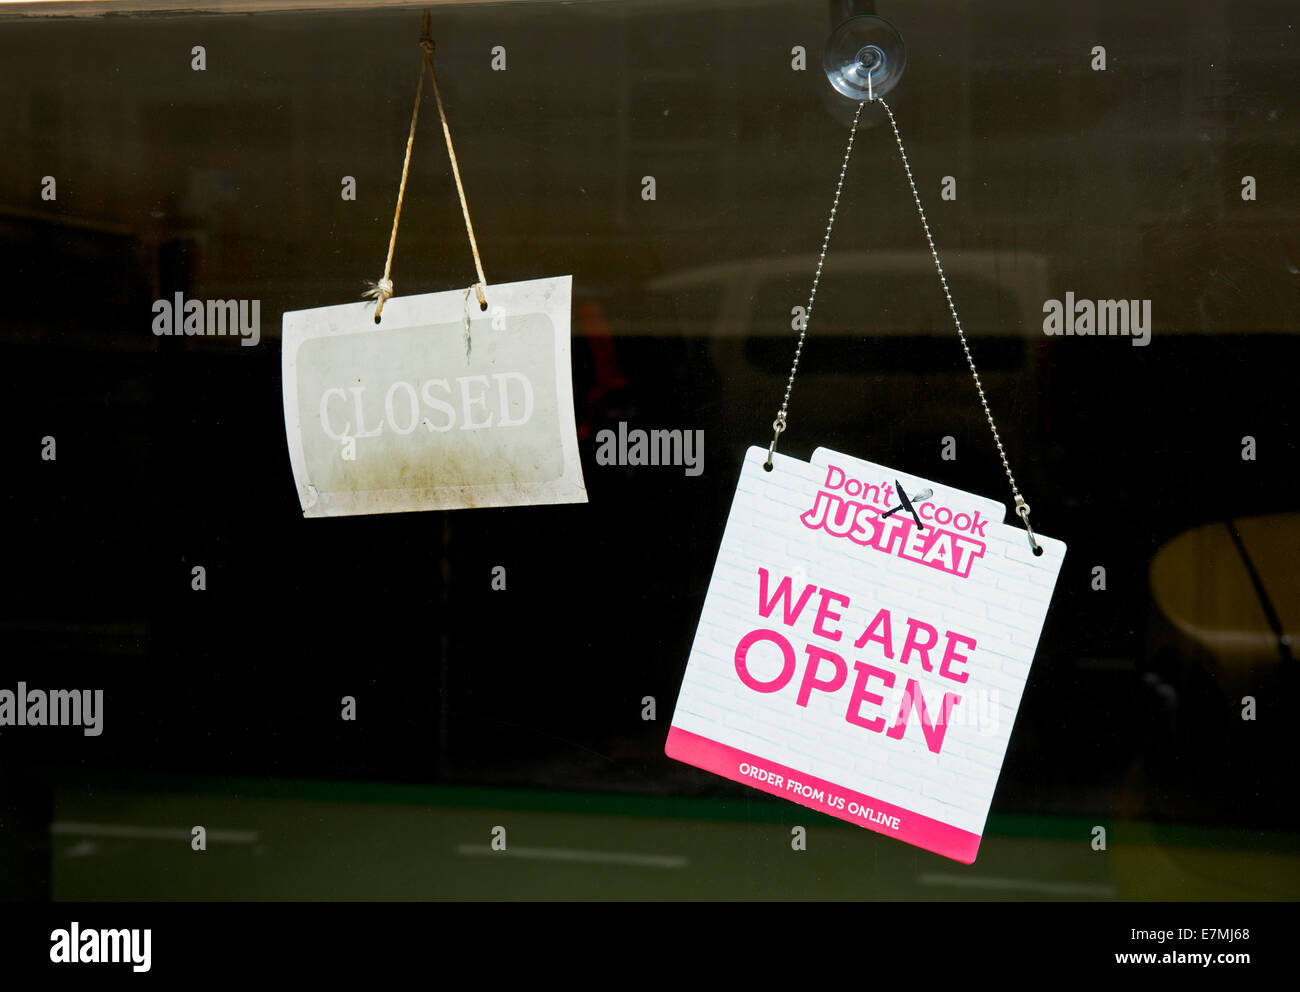 signs-on-shop-door-open-and-closed-england-uk-E7MJ68.jpg